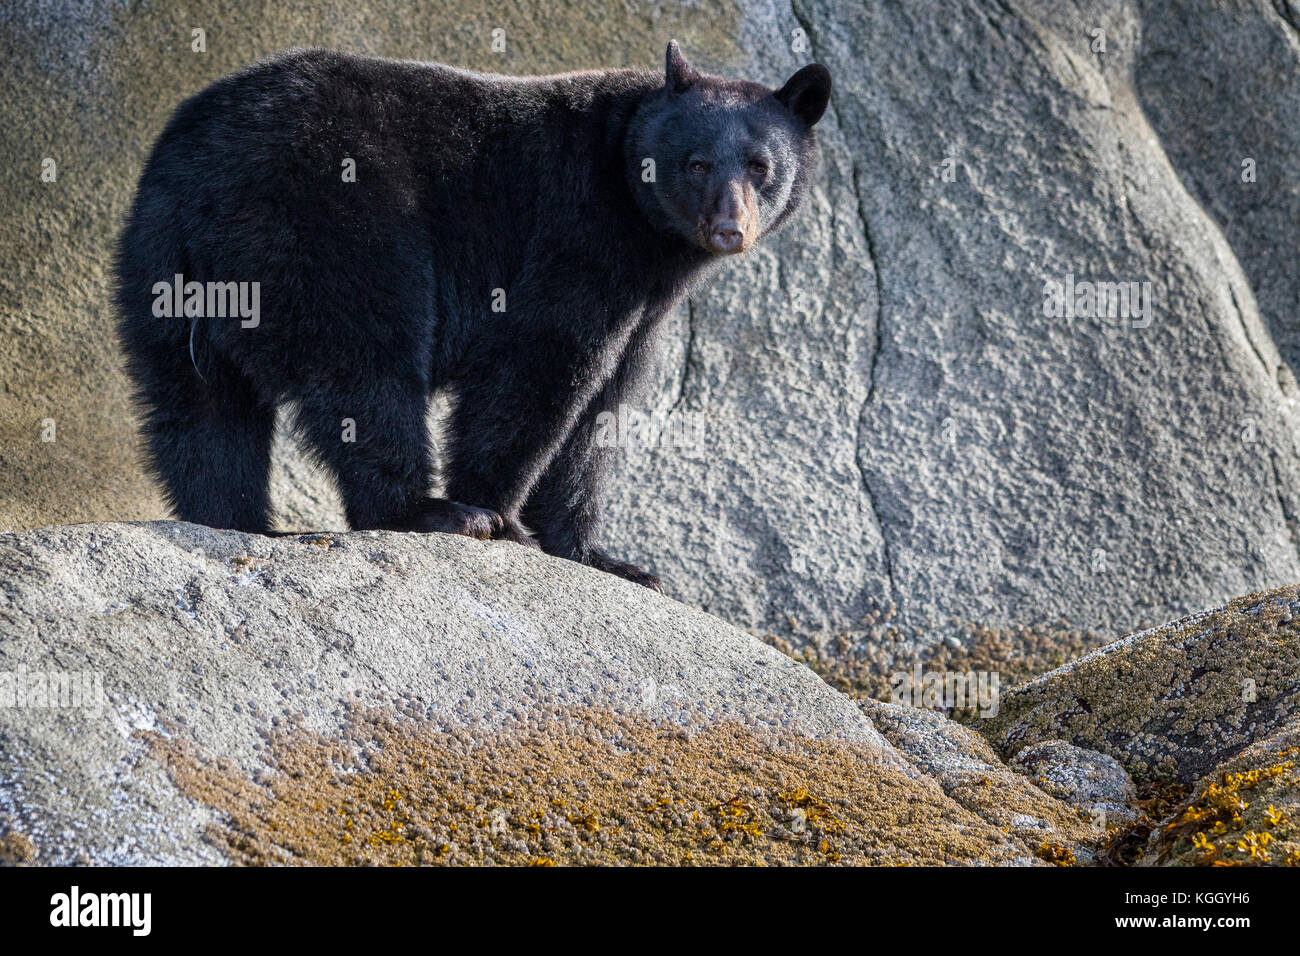 Black bear (Ursus americanus) standing along a cliff at low tide in Knight Inlet, beautiful British Columbia, Canada. - Stock Image